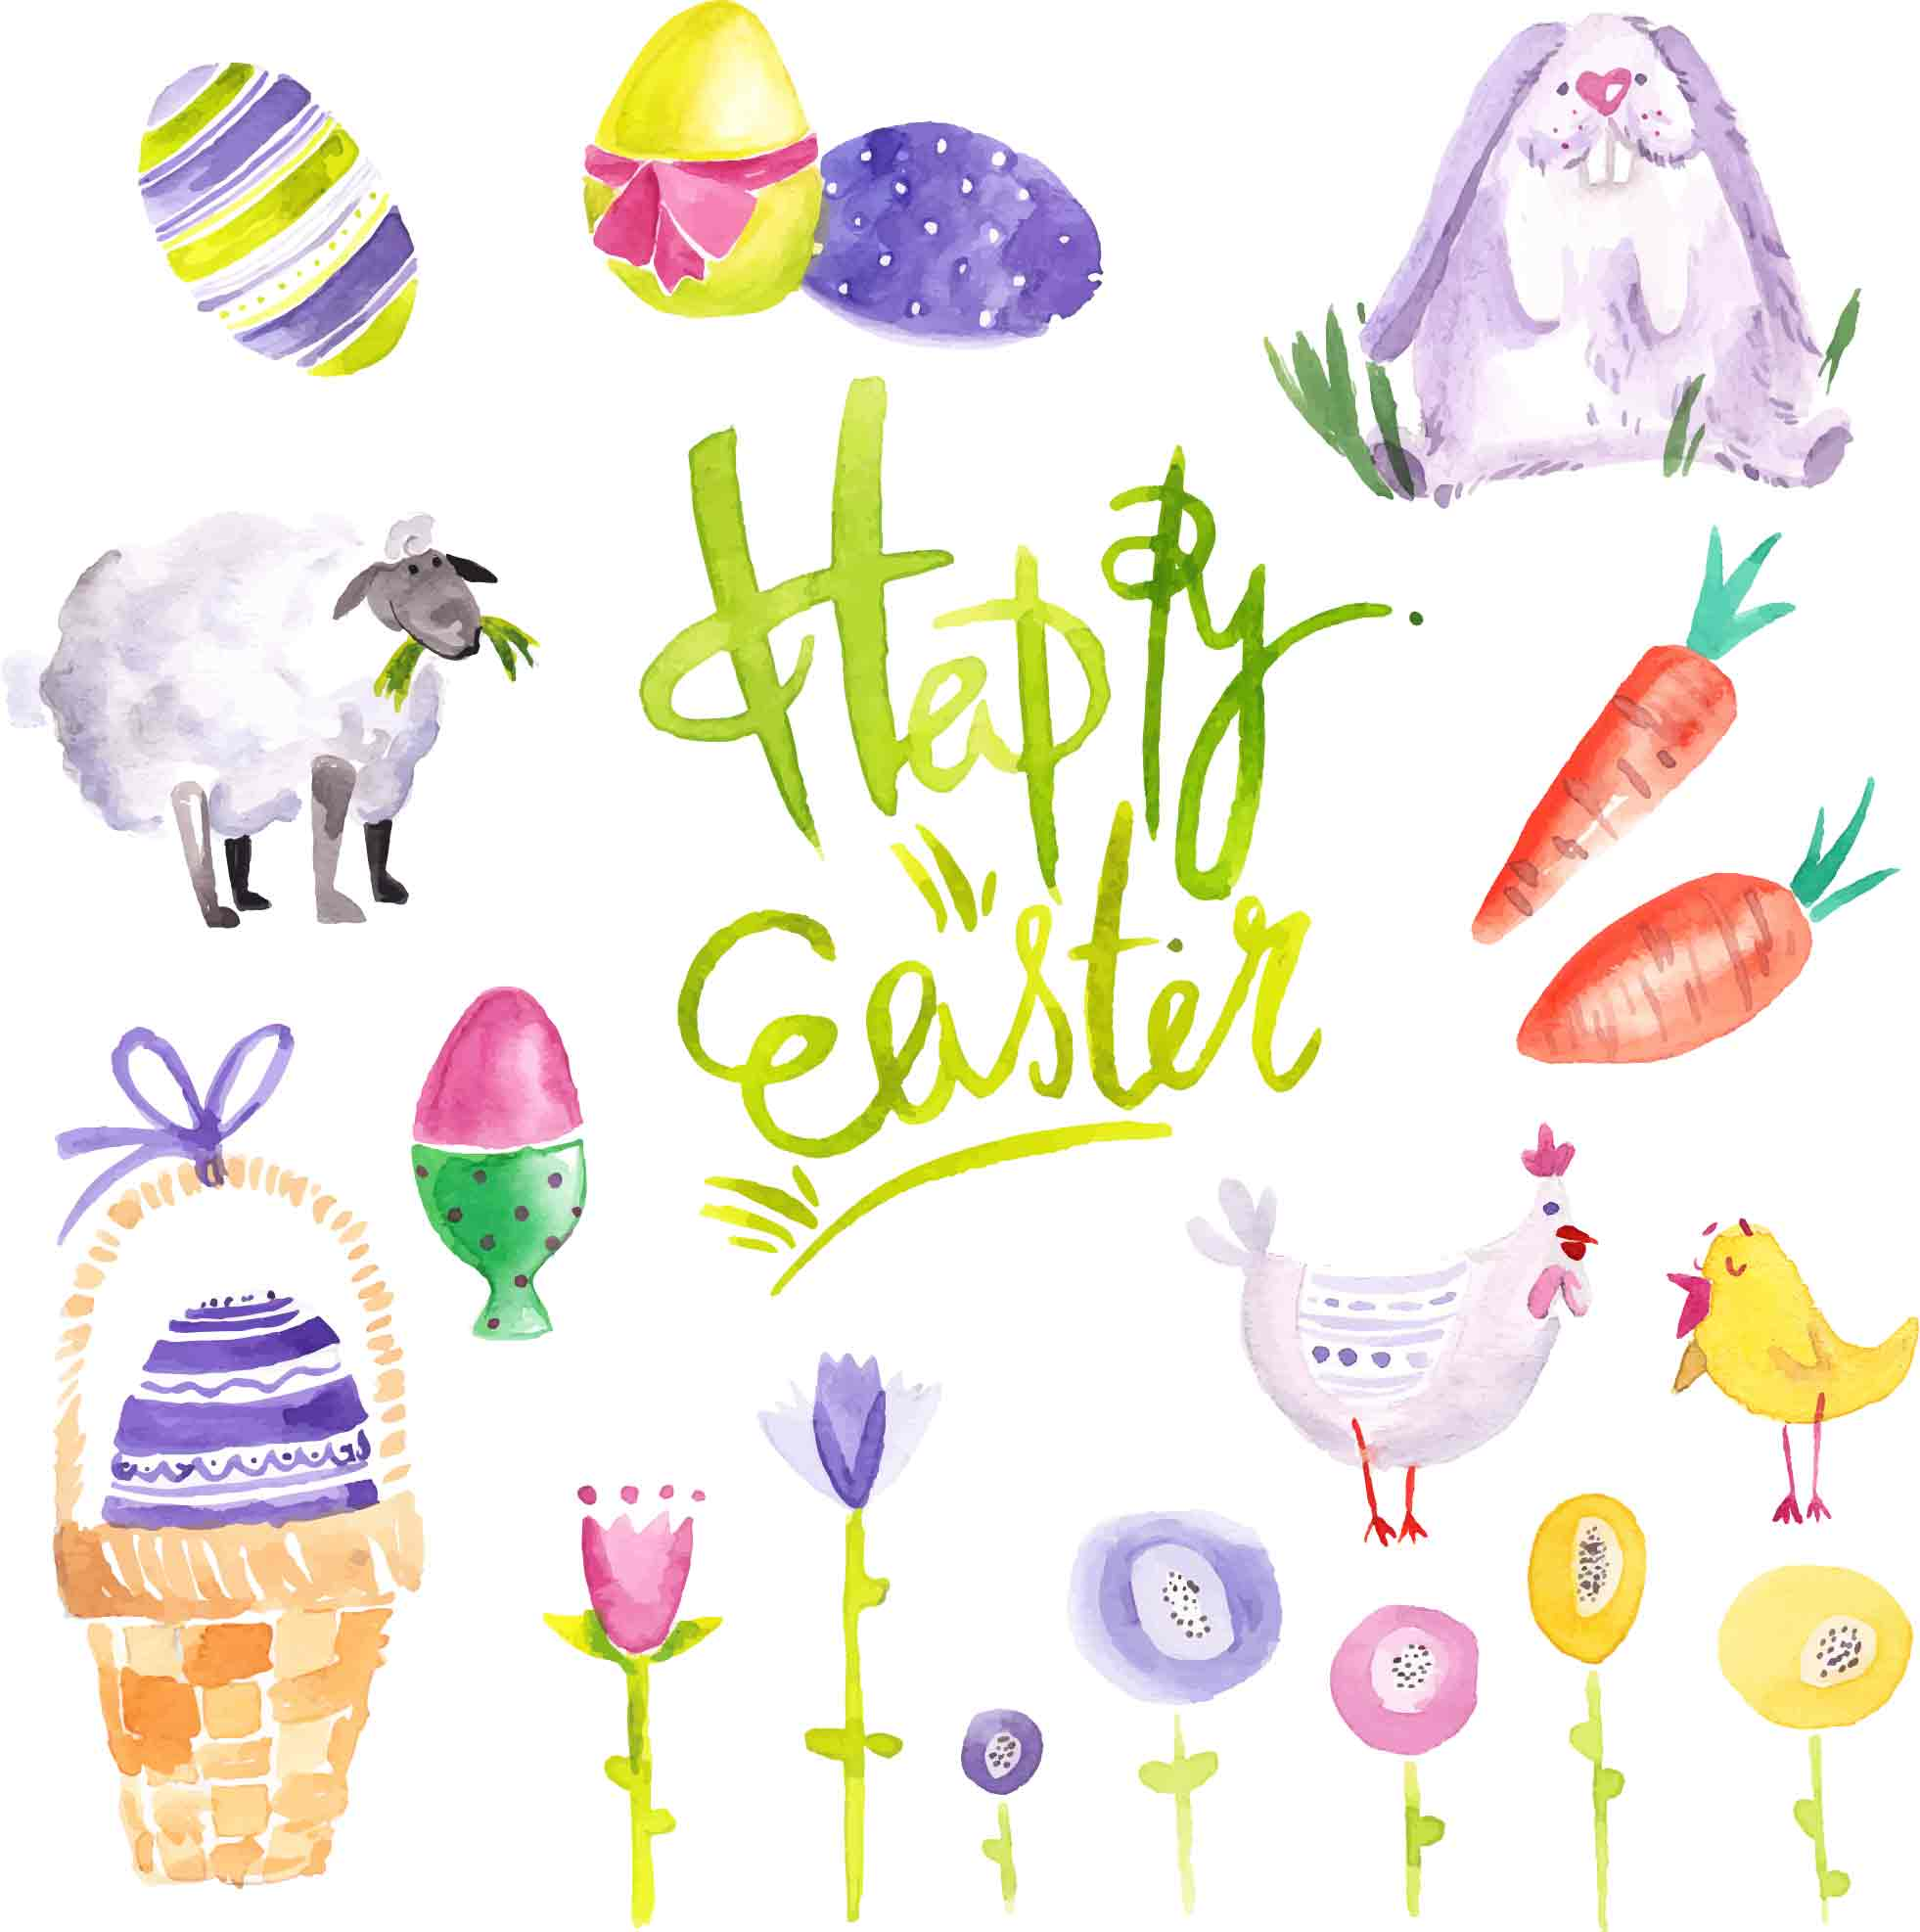 Happy Easter Images Clip Art - Just $15 For a Bundle - design tnt vector watercolor easter